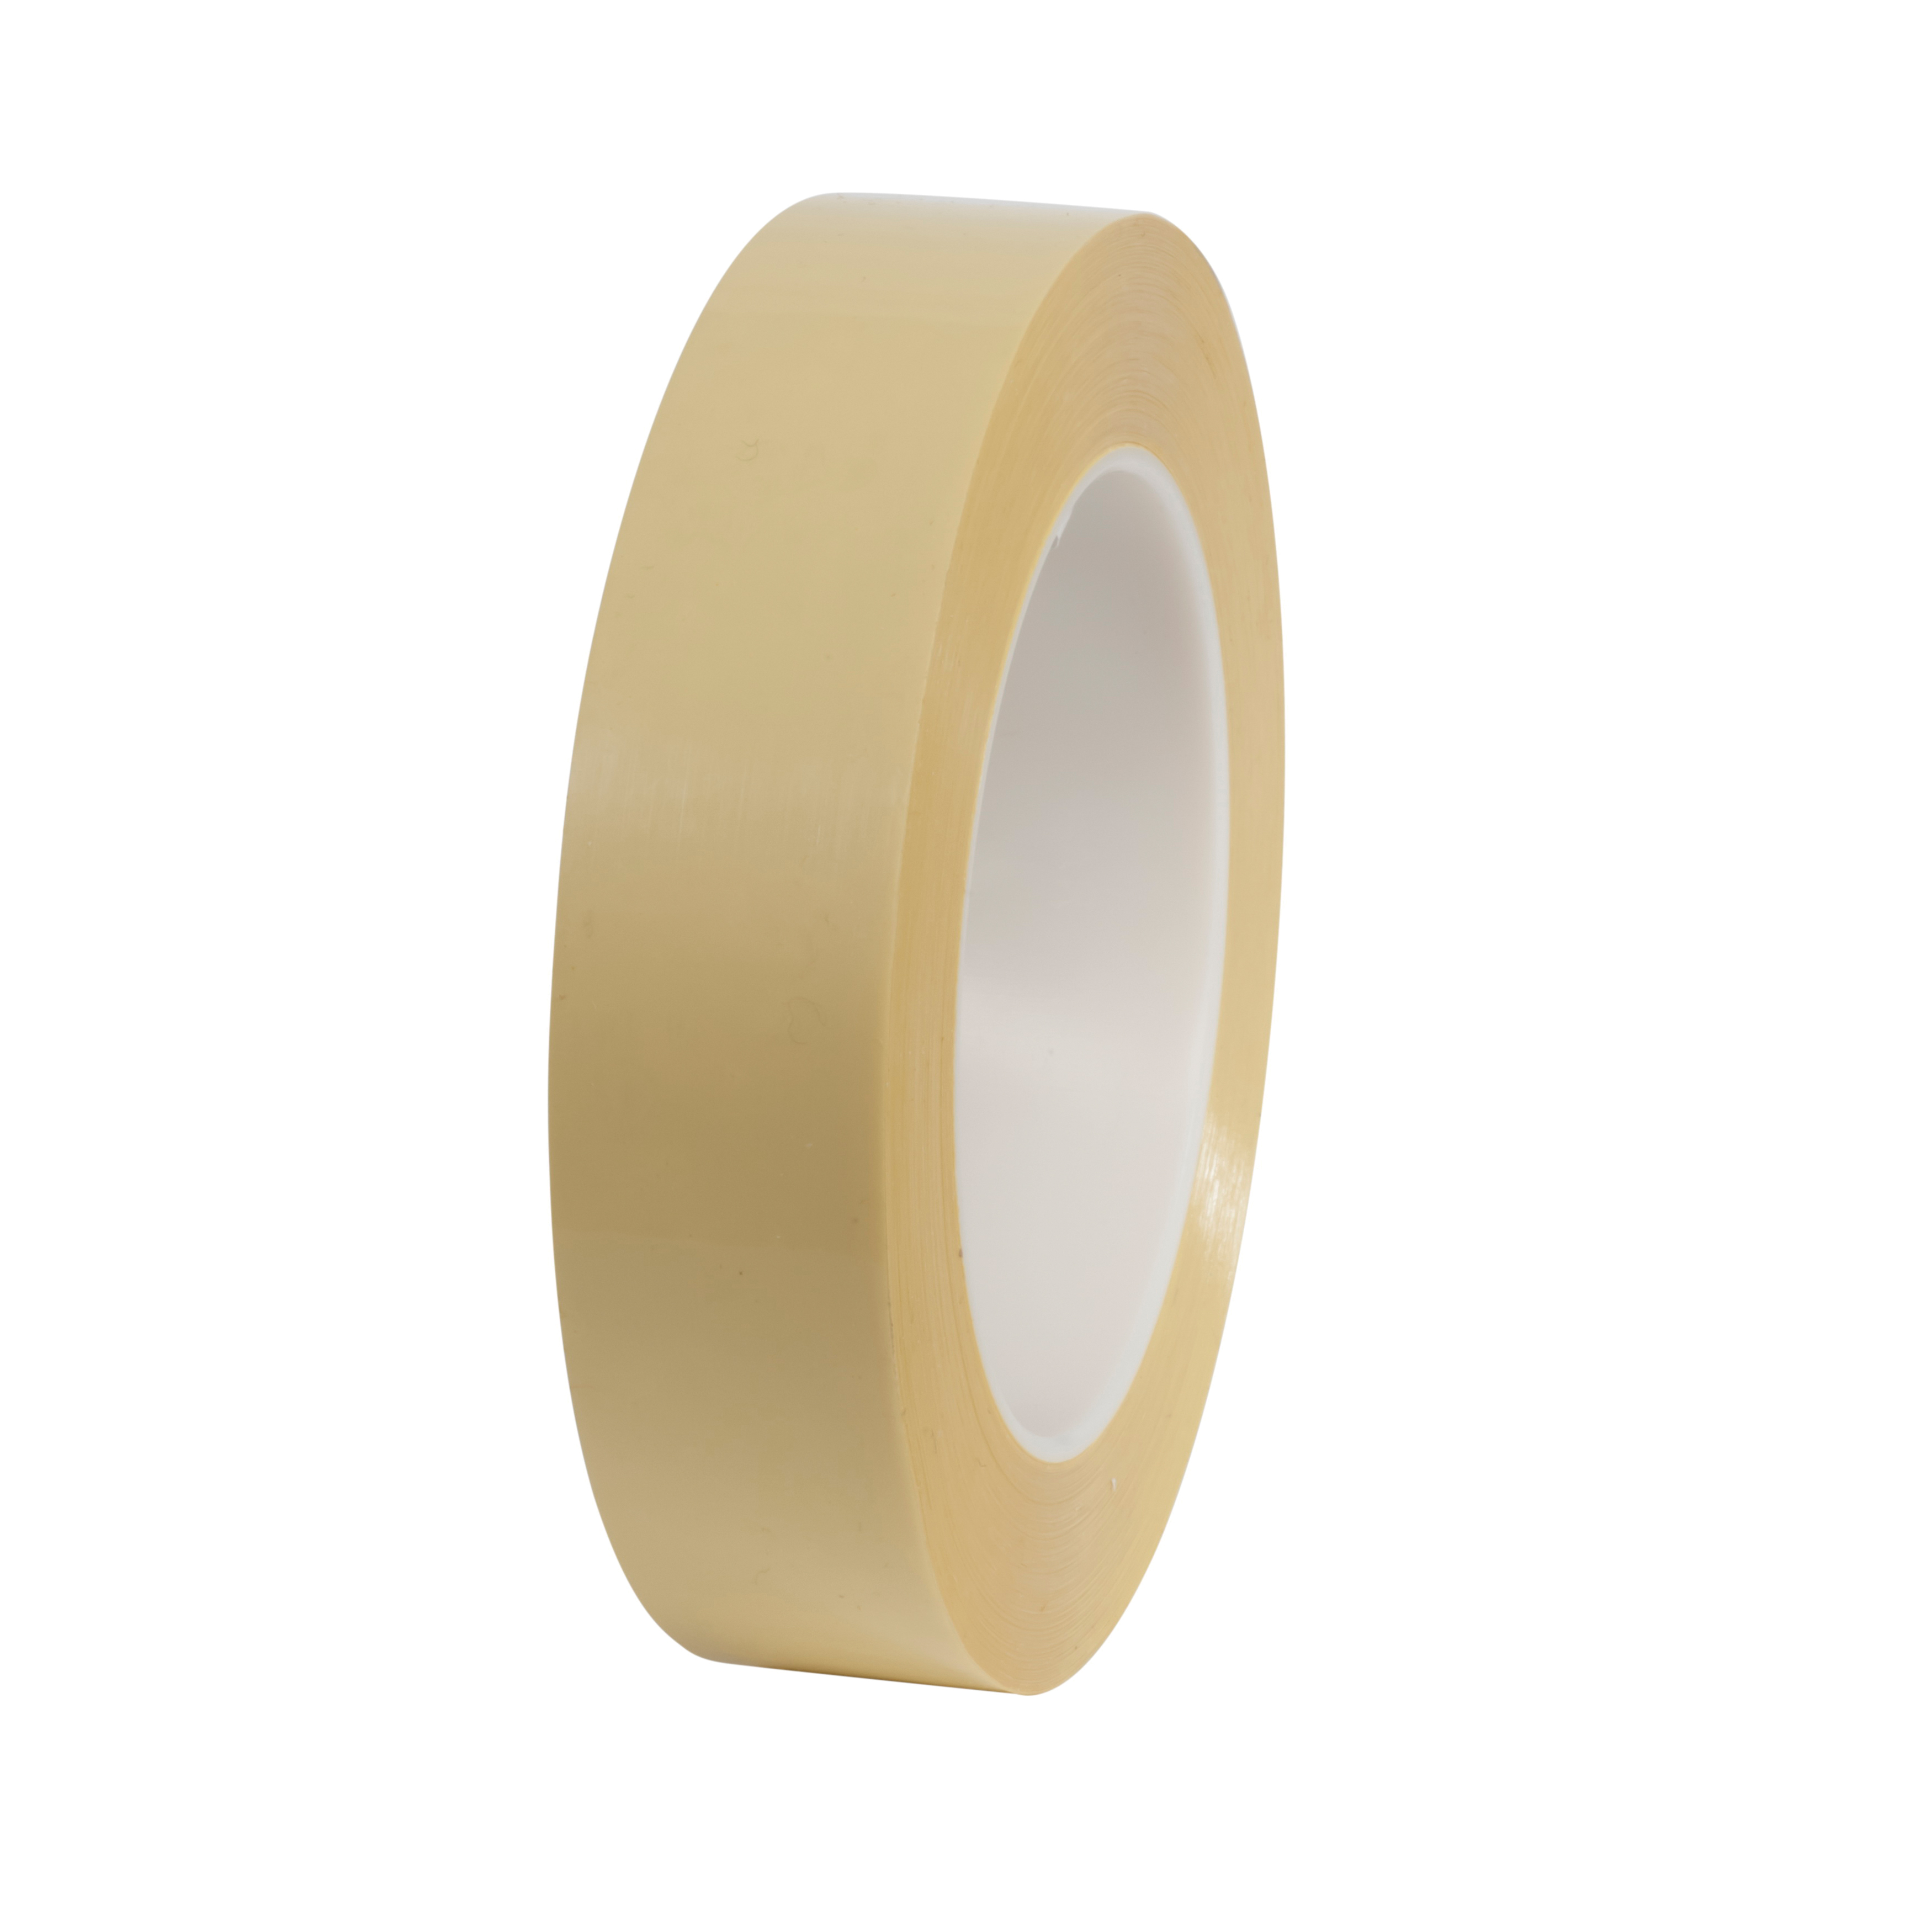 3M™ 021200-05764 Splicing Tape, 72 yd L x 1 in W, 3.2 mil THK, Rubber Adhesive, Polyester Backing, Yellow